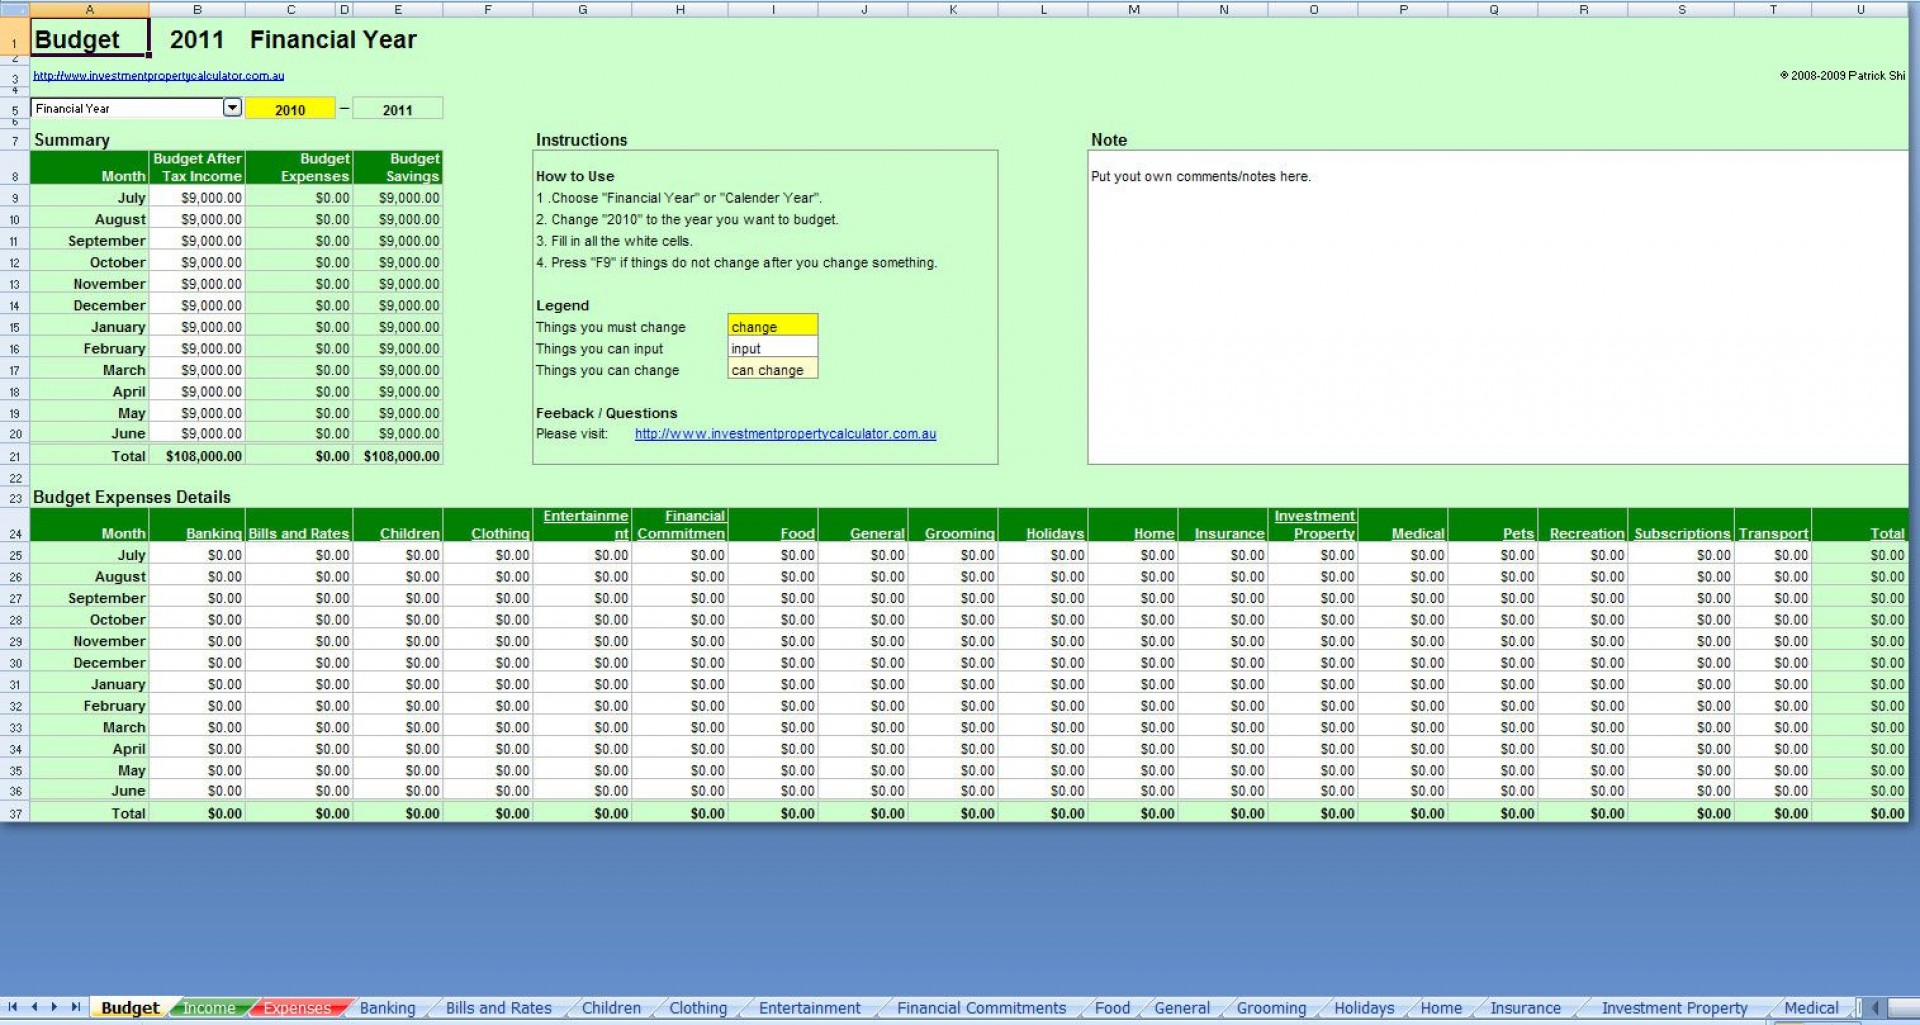 006 Awful Simple Excel Budget Template Design  Personal South Africa Household Free1920